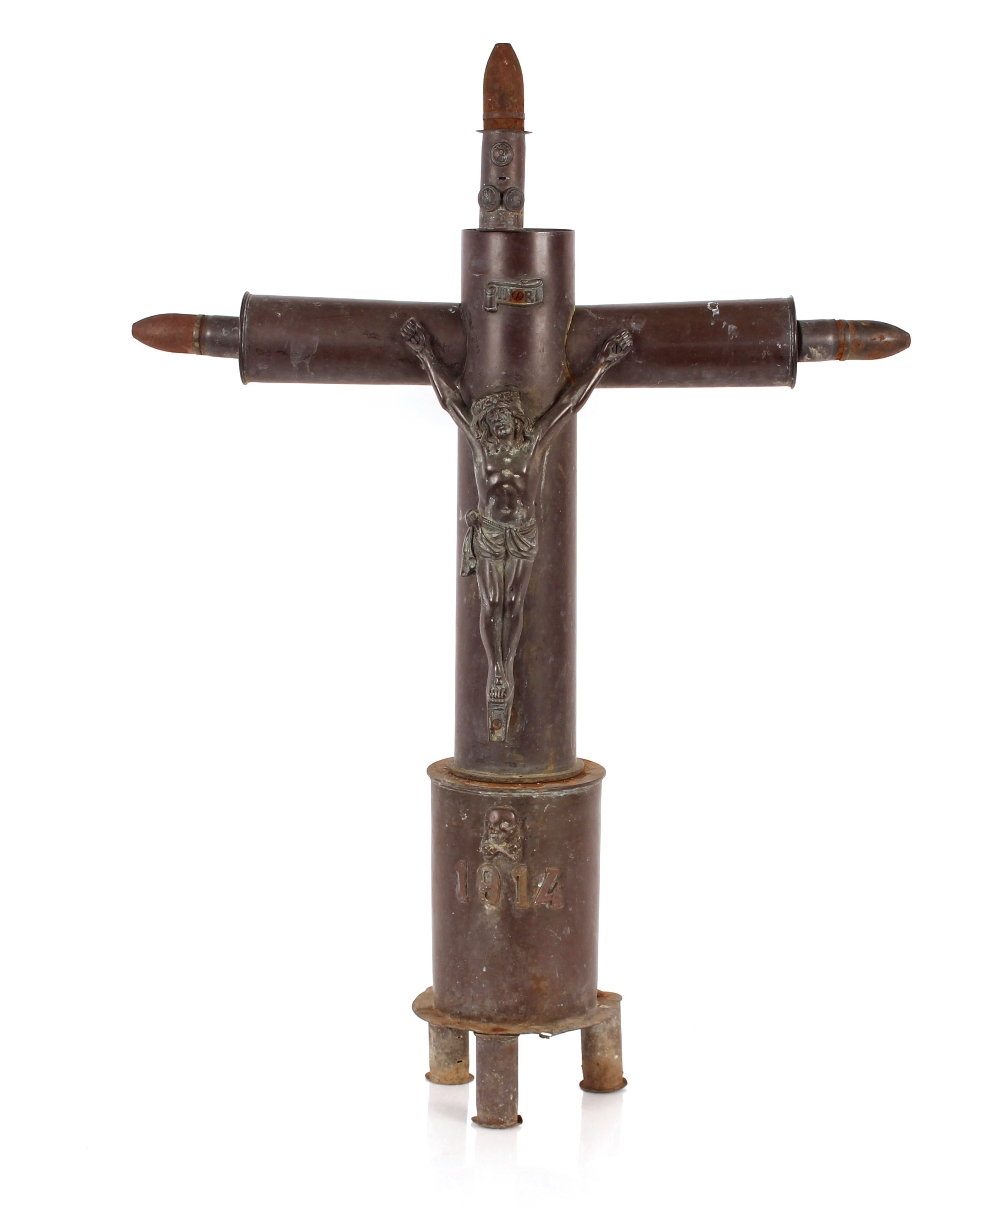 A rare and unusual Trench Art memorial crucifix,dated 1914 made from WW1 shell cases etc. inscribed